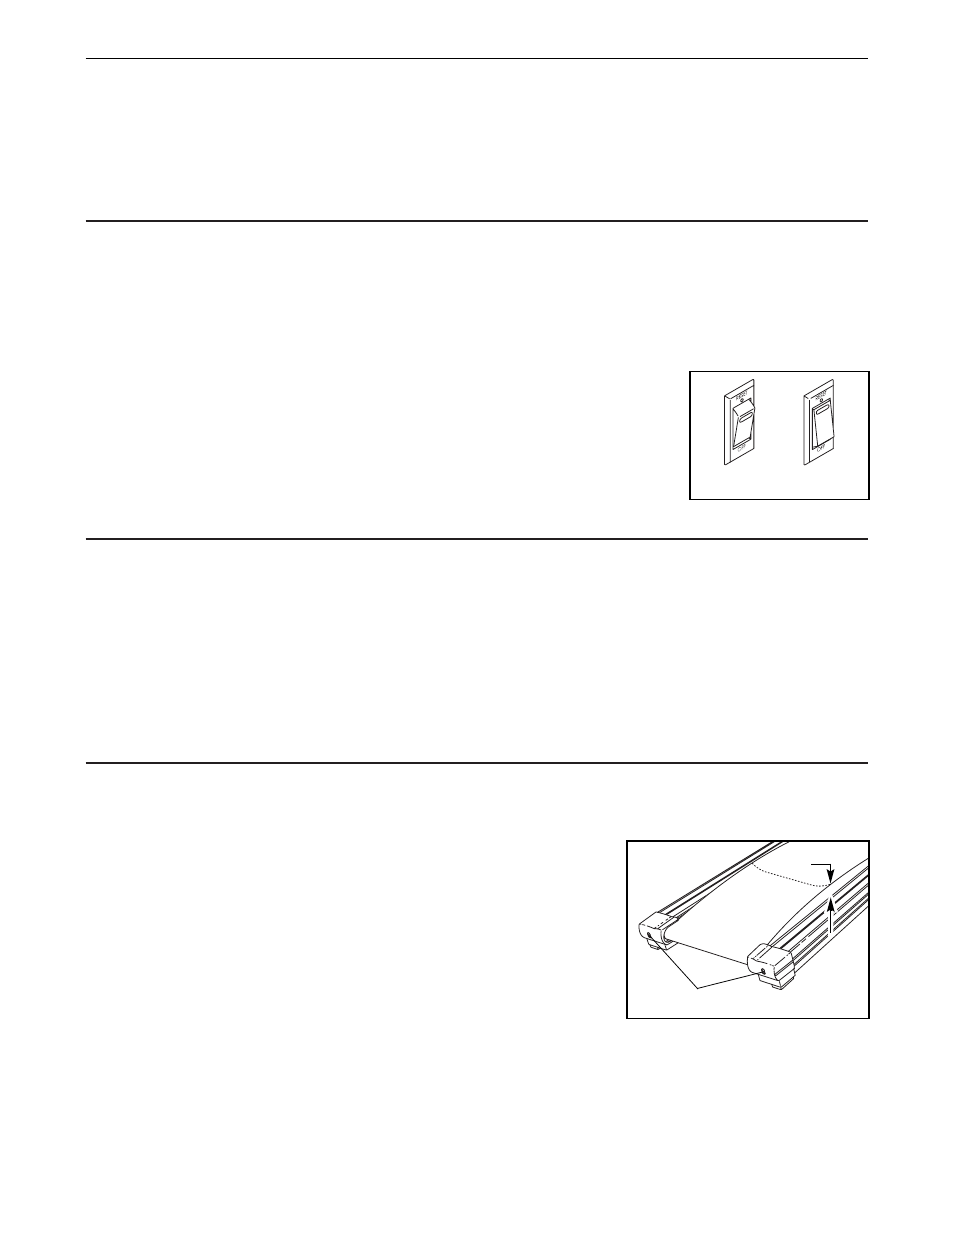 Troubleshooting Healthrider R65 Hrtl71830 User Manual Page 26 34 Circuit Breakers That Won39t Reset